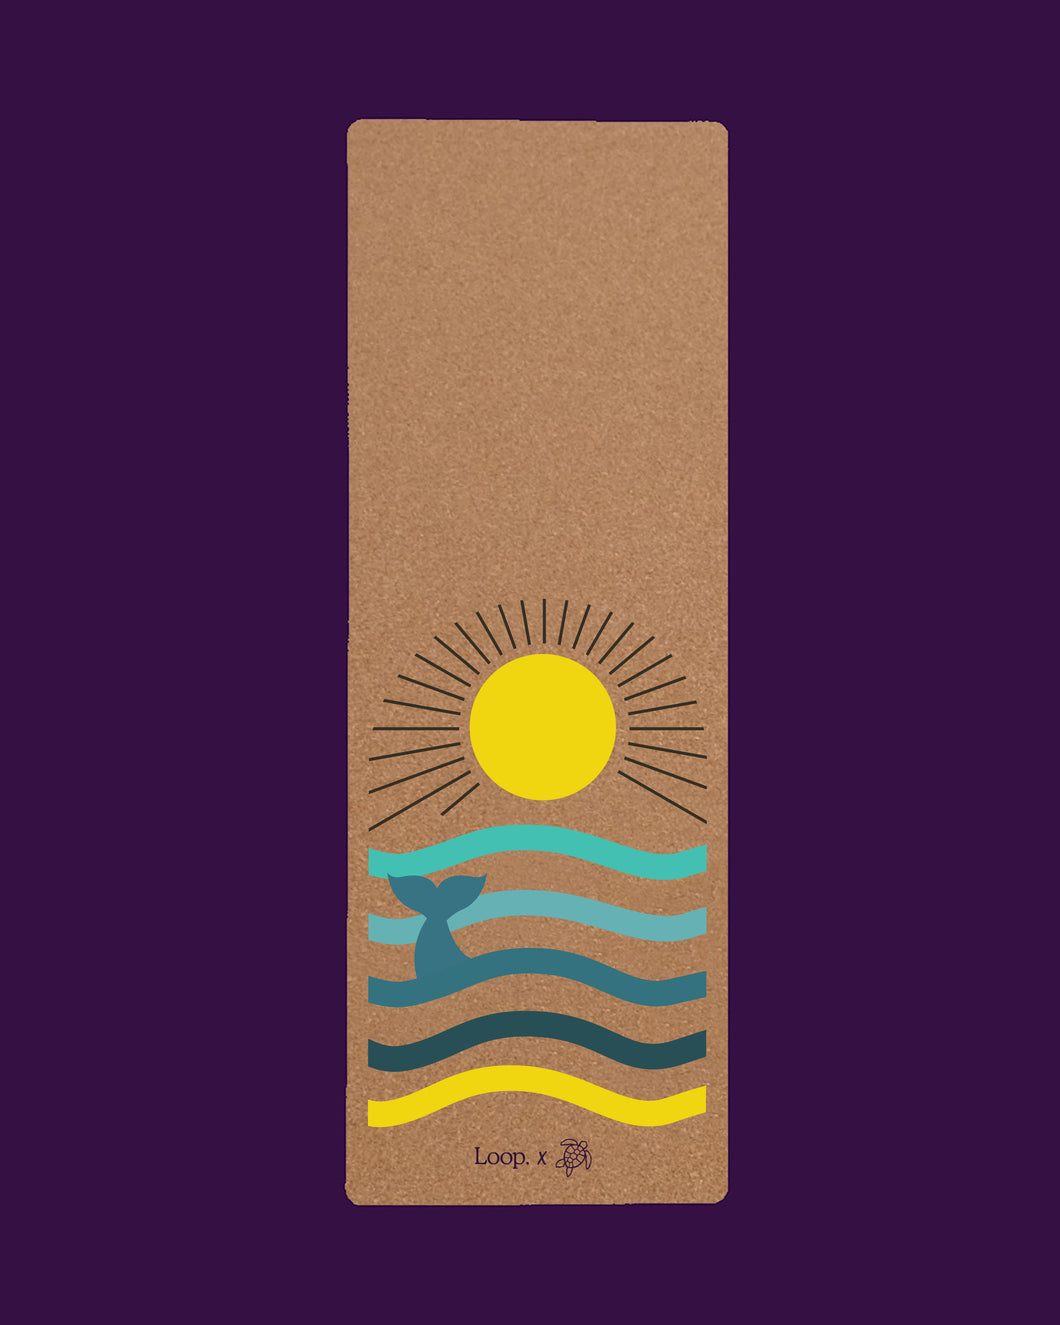 Cork Yoga Mat - Sun Salutocean by Save Philippine Seas - Loop.